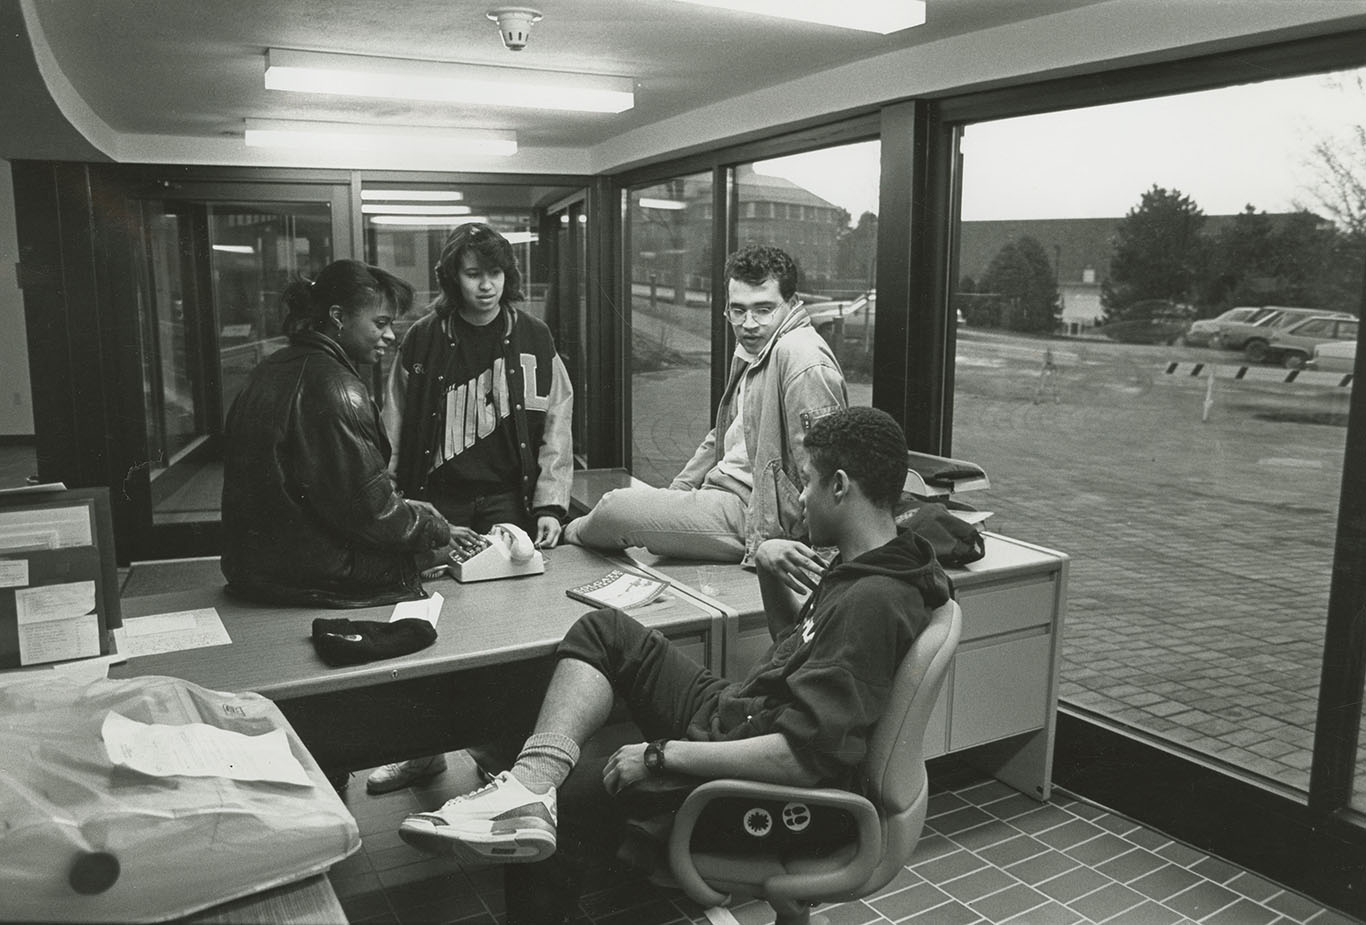 Students enjoy the new cultural center, 1989